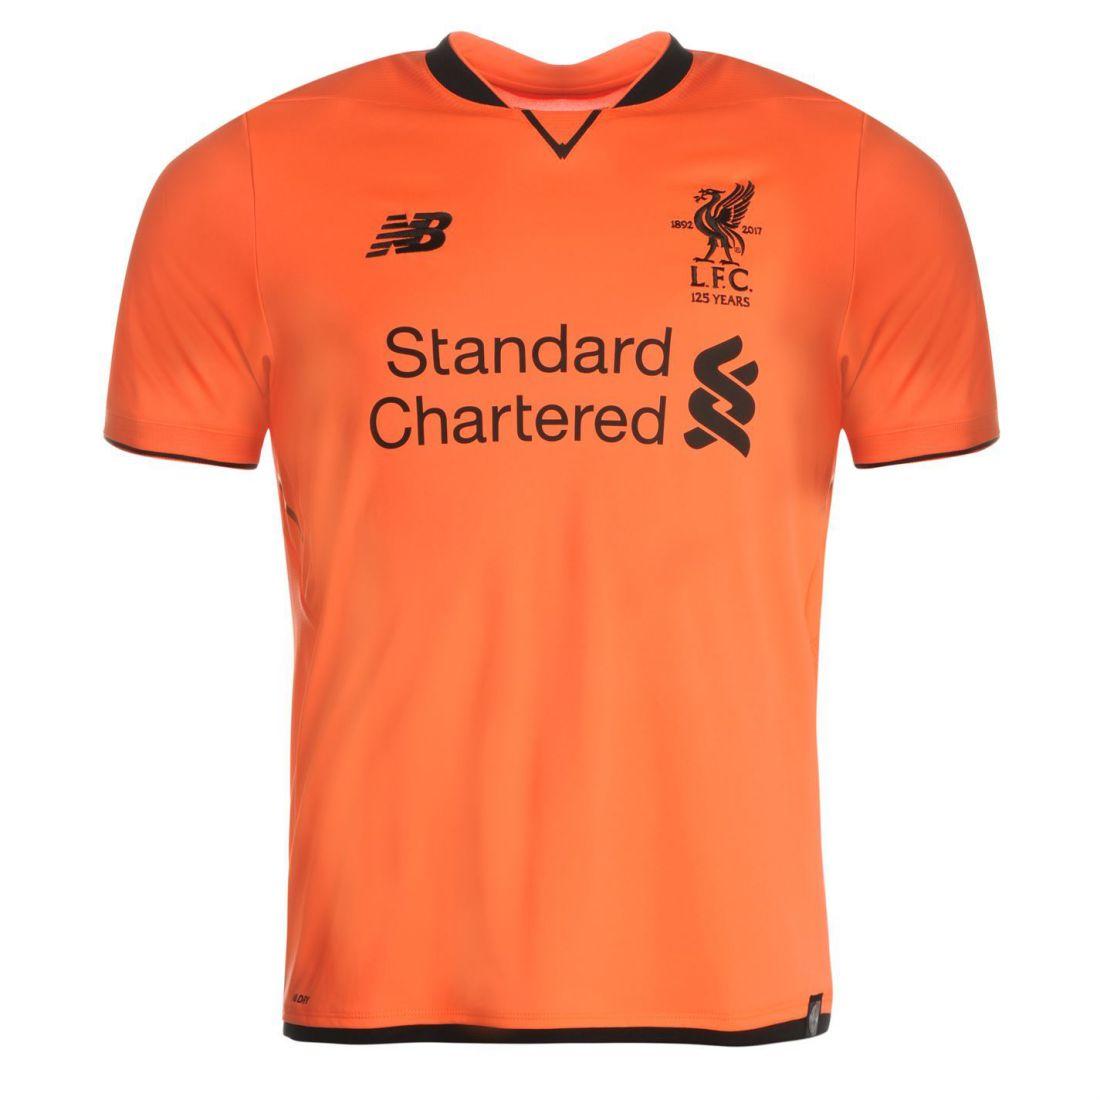 809463bd2 Details about New Balance Mens Gents Liverpool Third Shirt 2017 2018 Top  Clothing